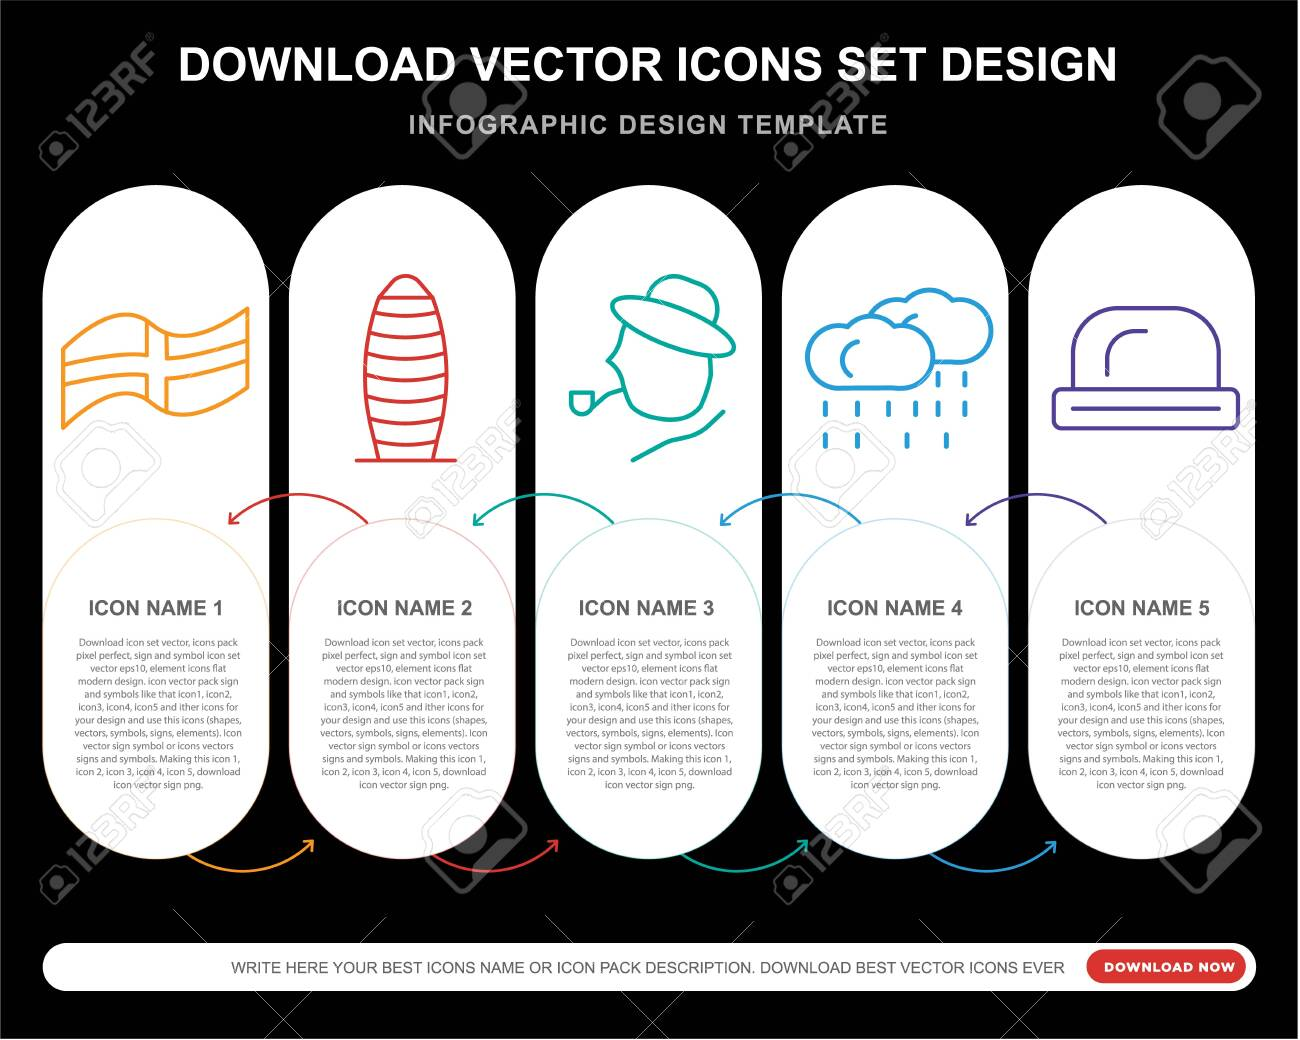 5 vector icons such as England, Gherkin, Rainy, Bowler for infographic, layout, annual report, pixel perfect icon - 130332386